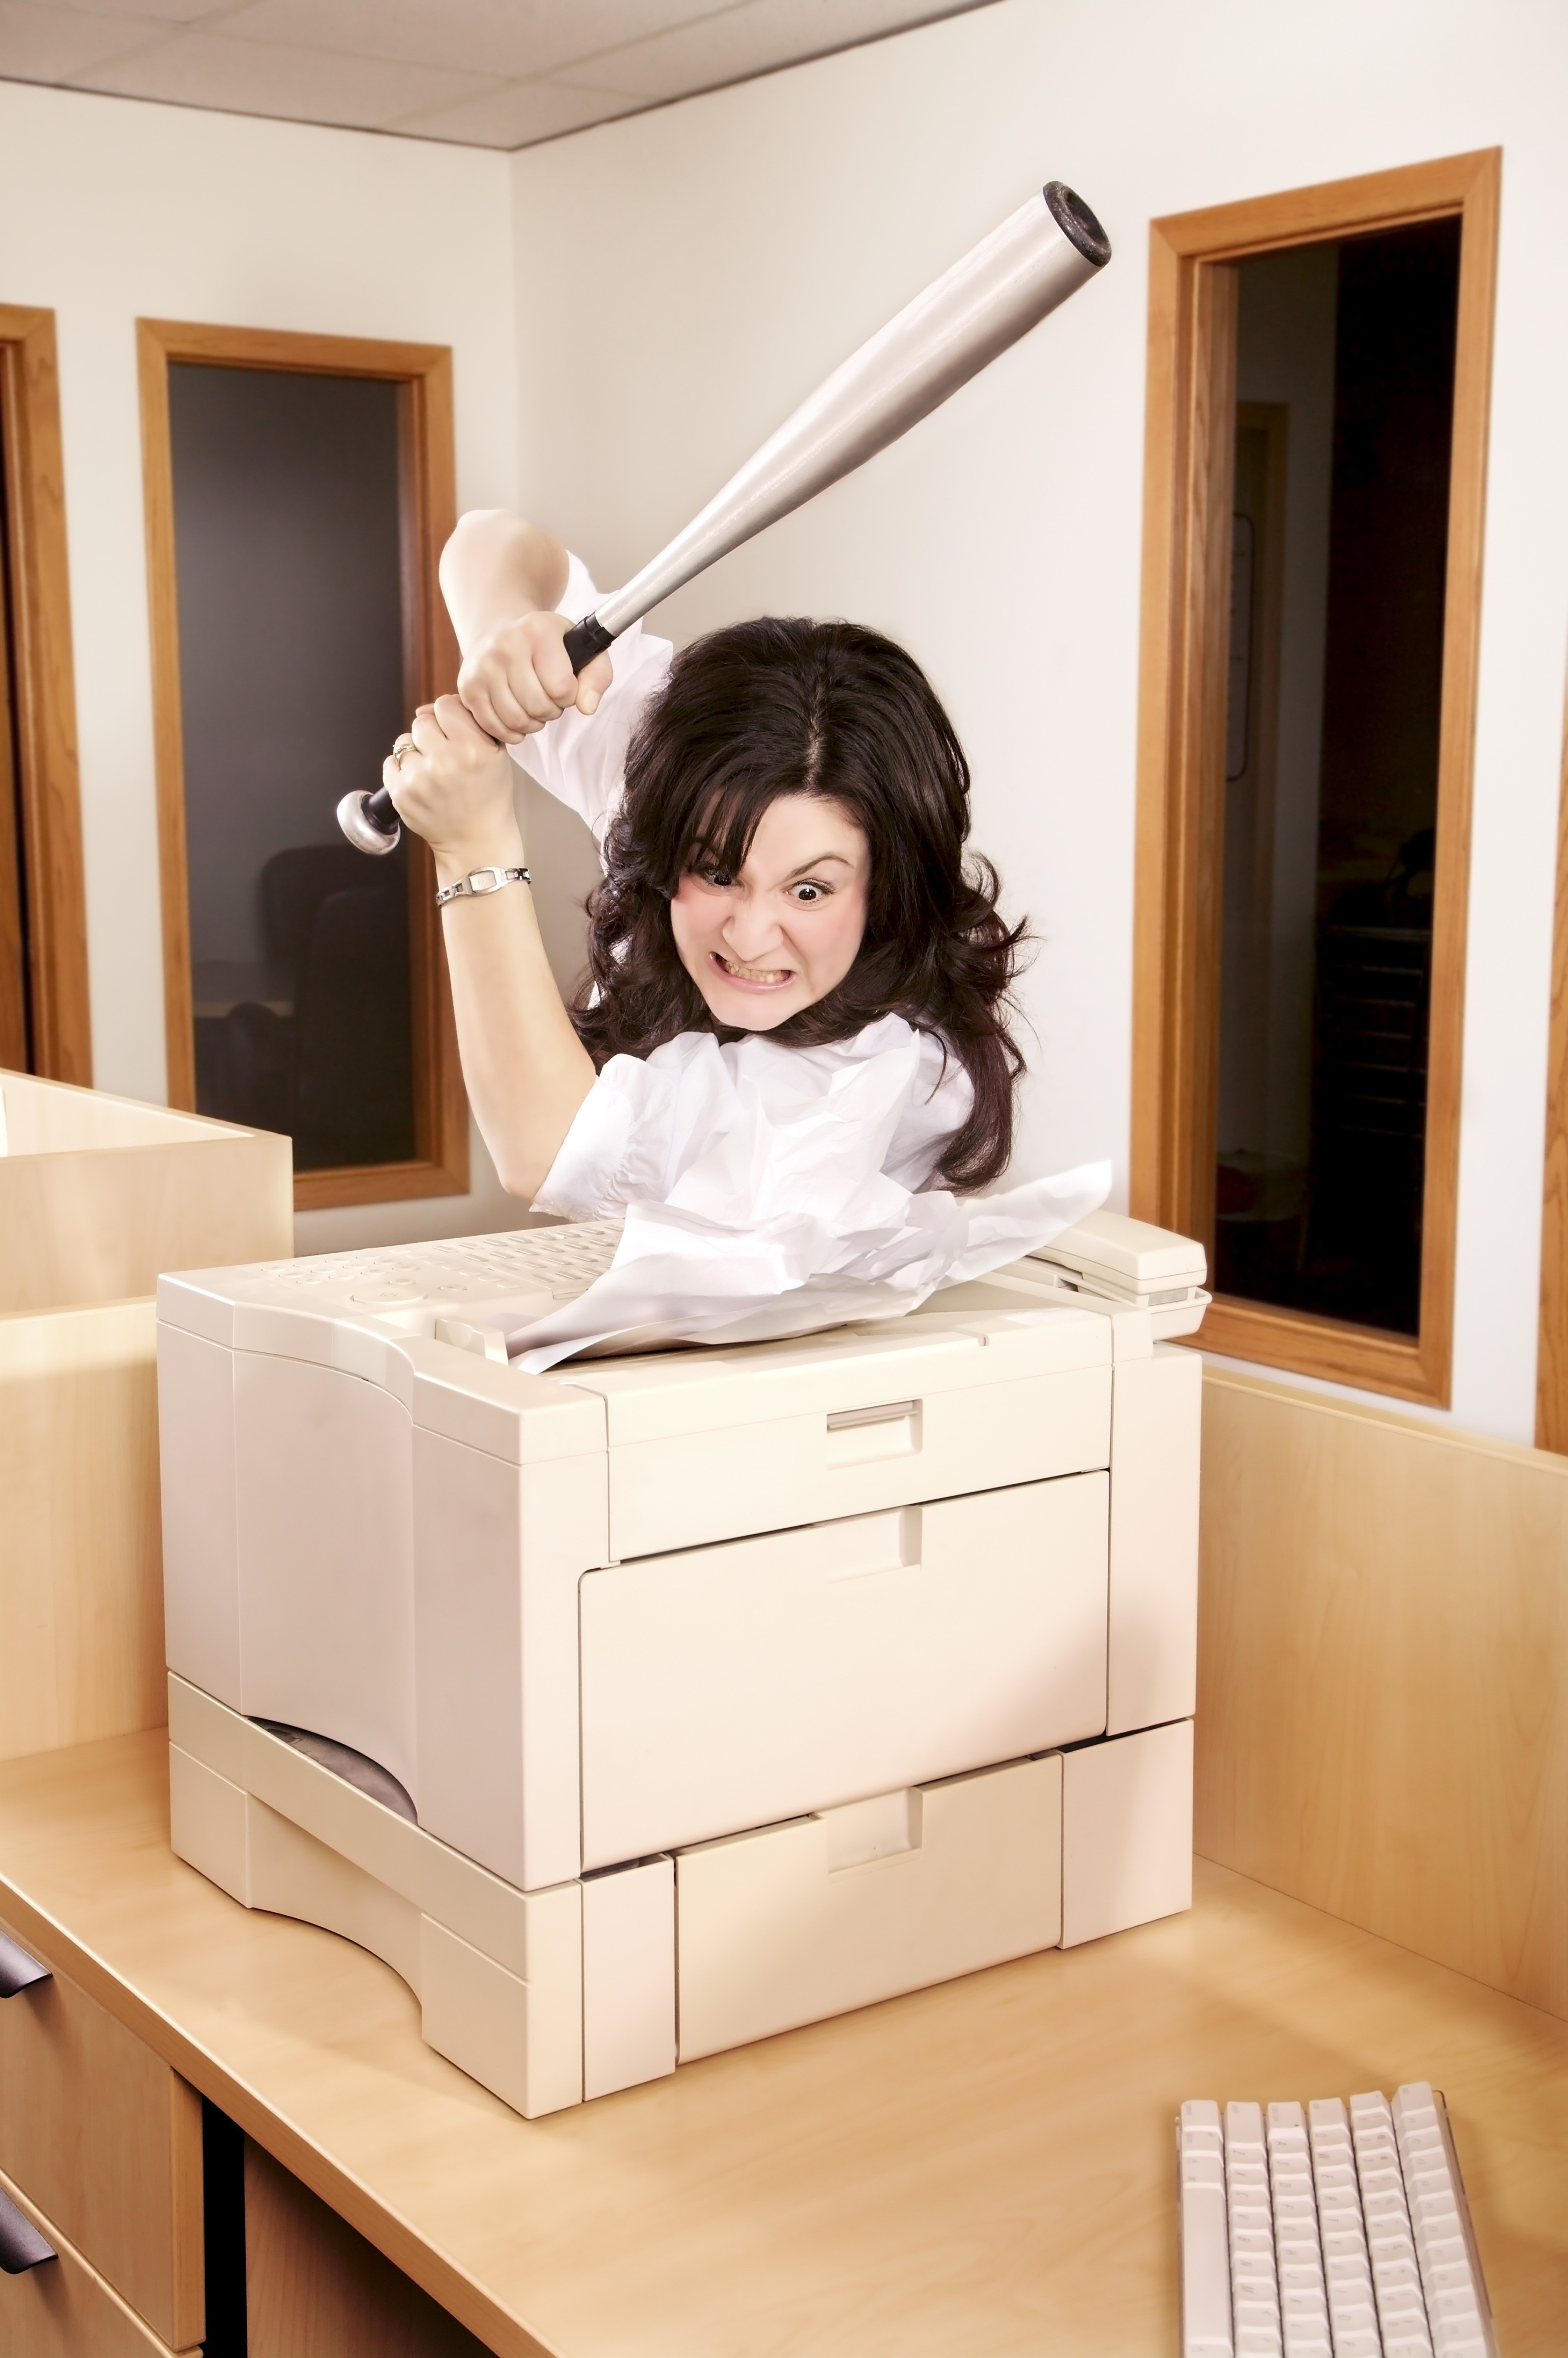 Do You Have Good Printing Etiquette?